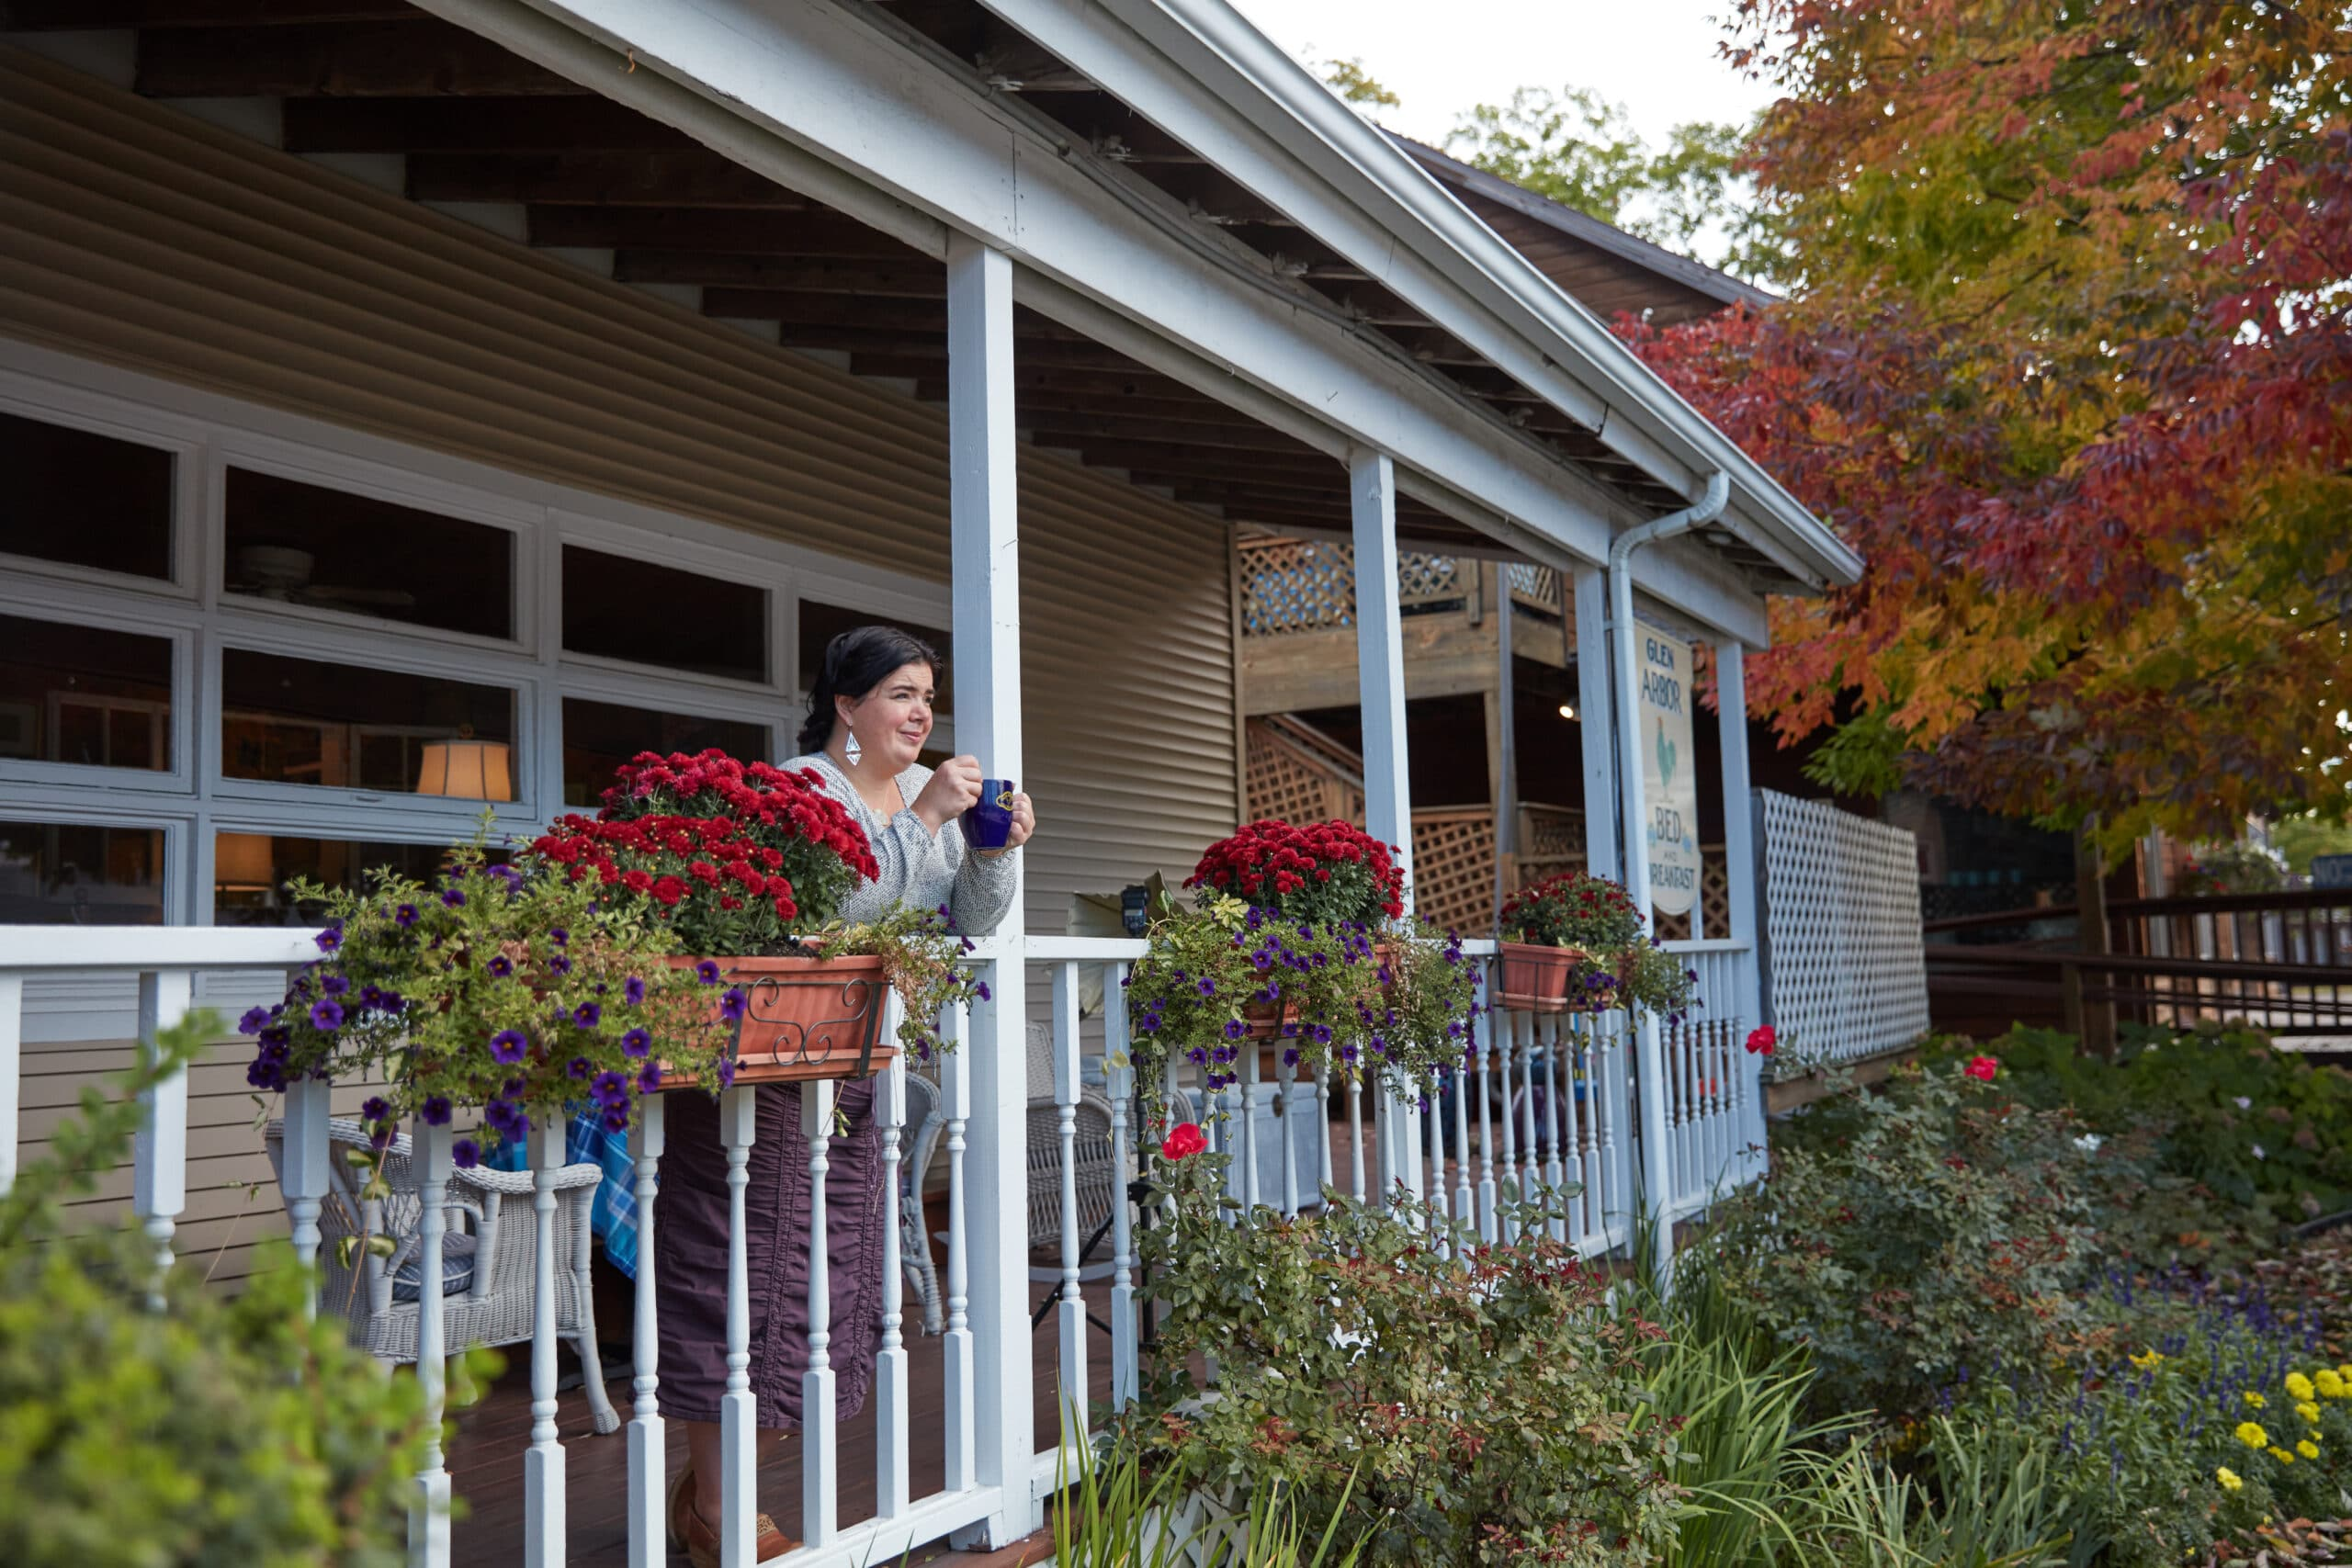 GABB, Laura on porch with coffee. Fall flowers in planters. Harrison 2020